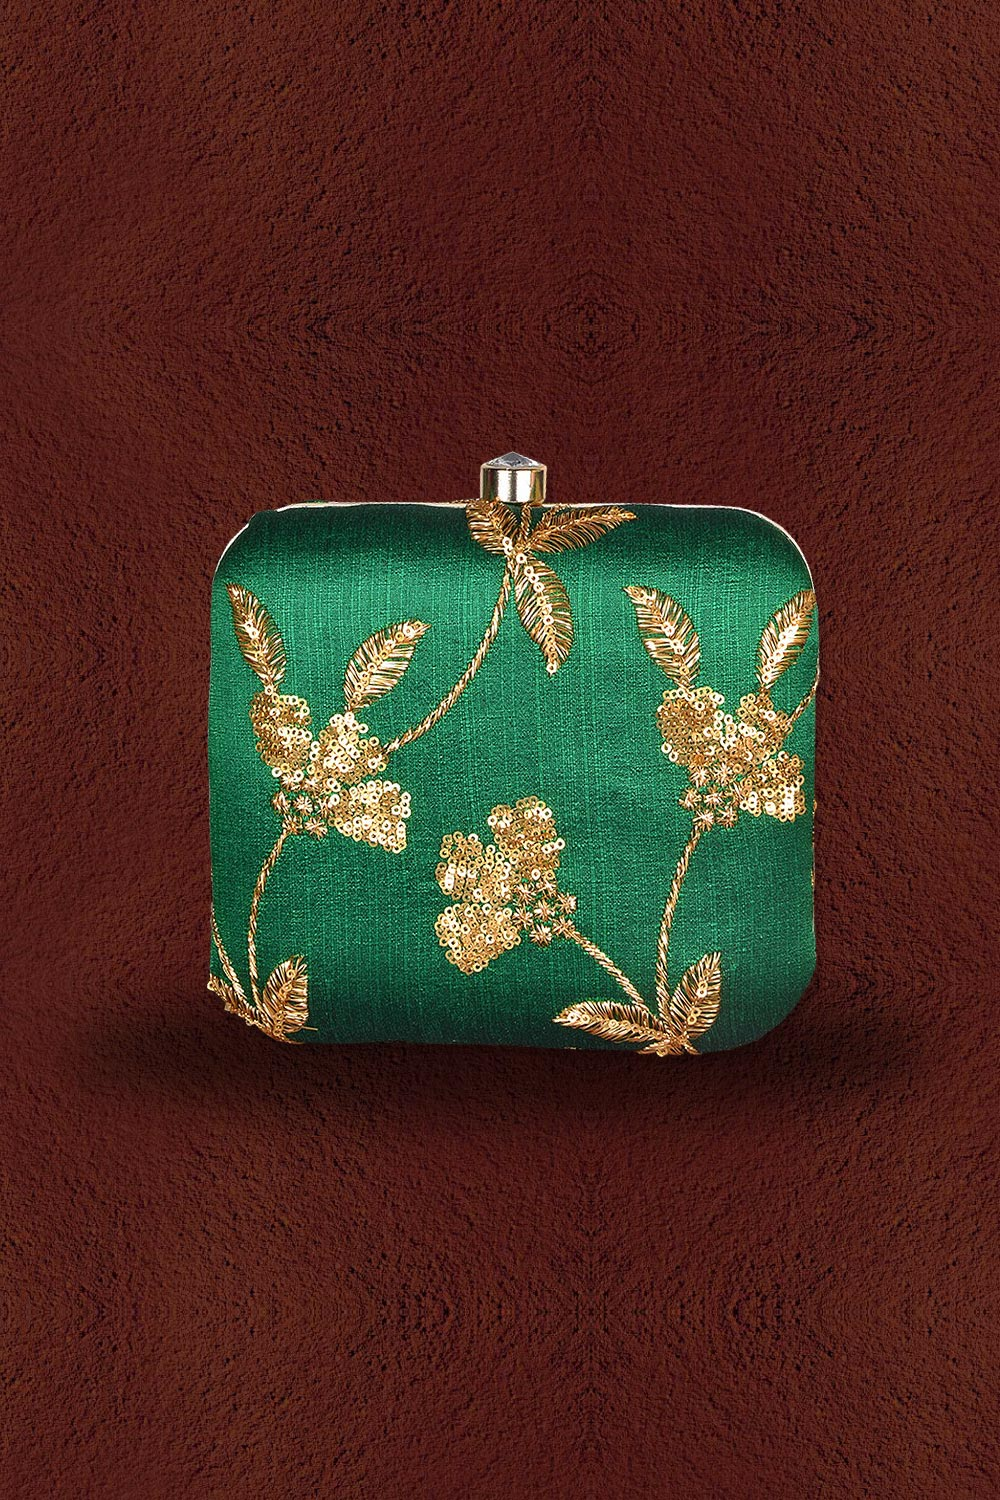 Green Sequin Embroidered Clutch